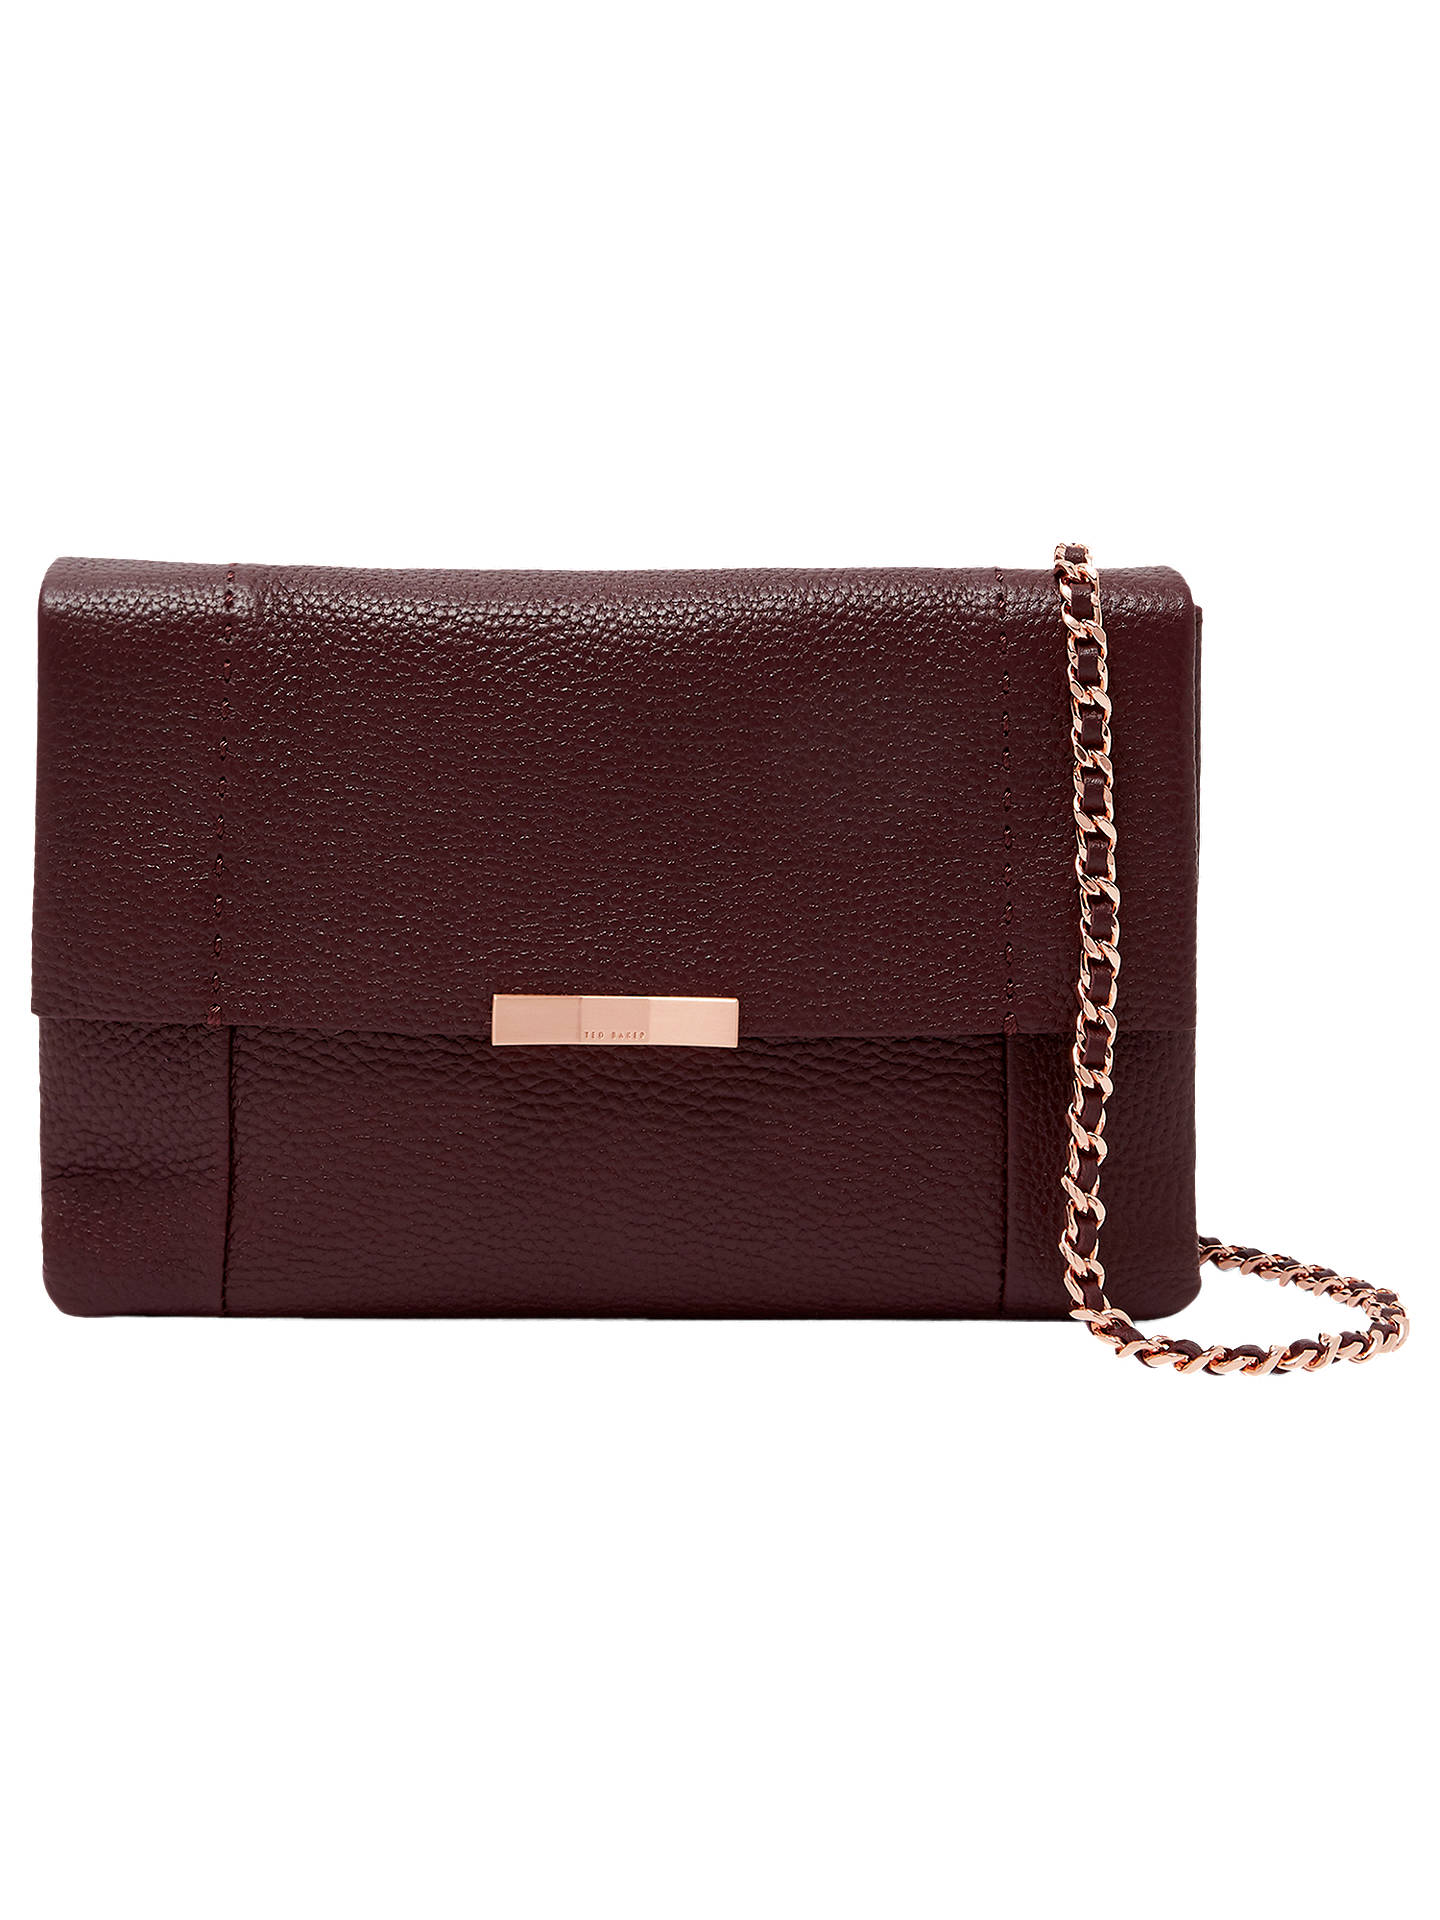 7163ef31929f4 Ted Baker Clarria Leather Cross Body Bag at John Lewis   Partners